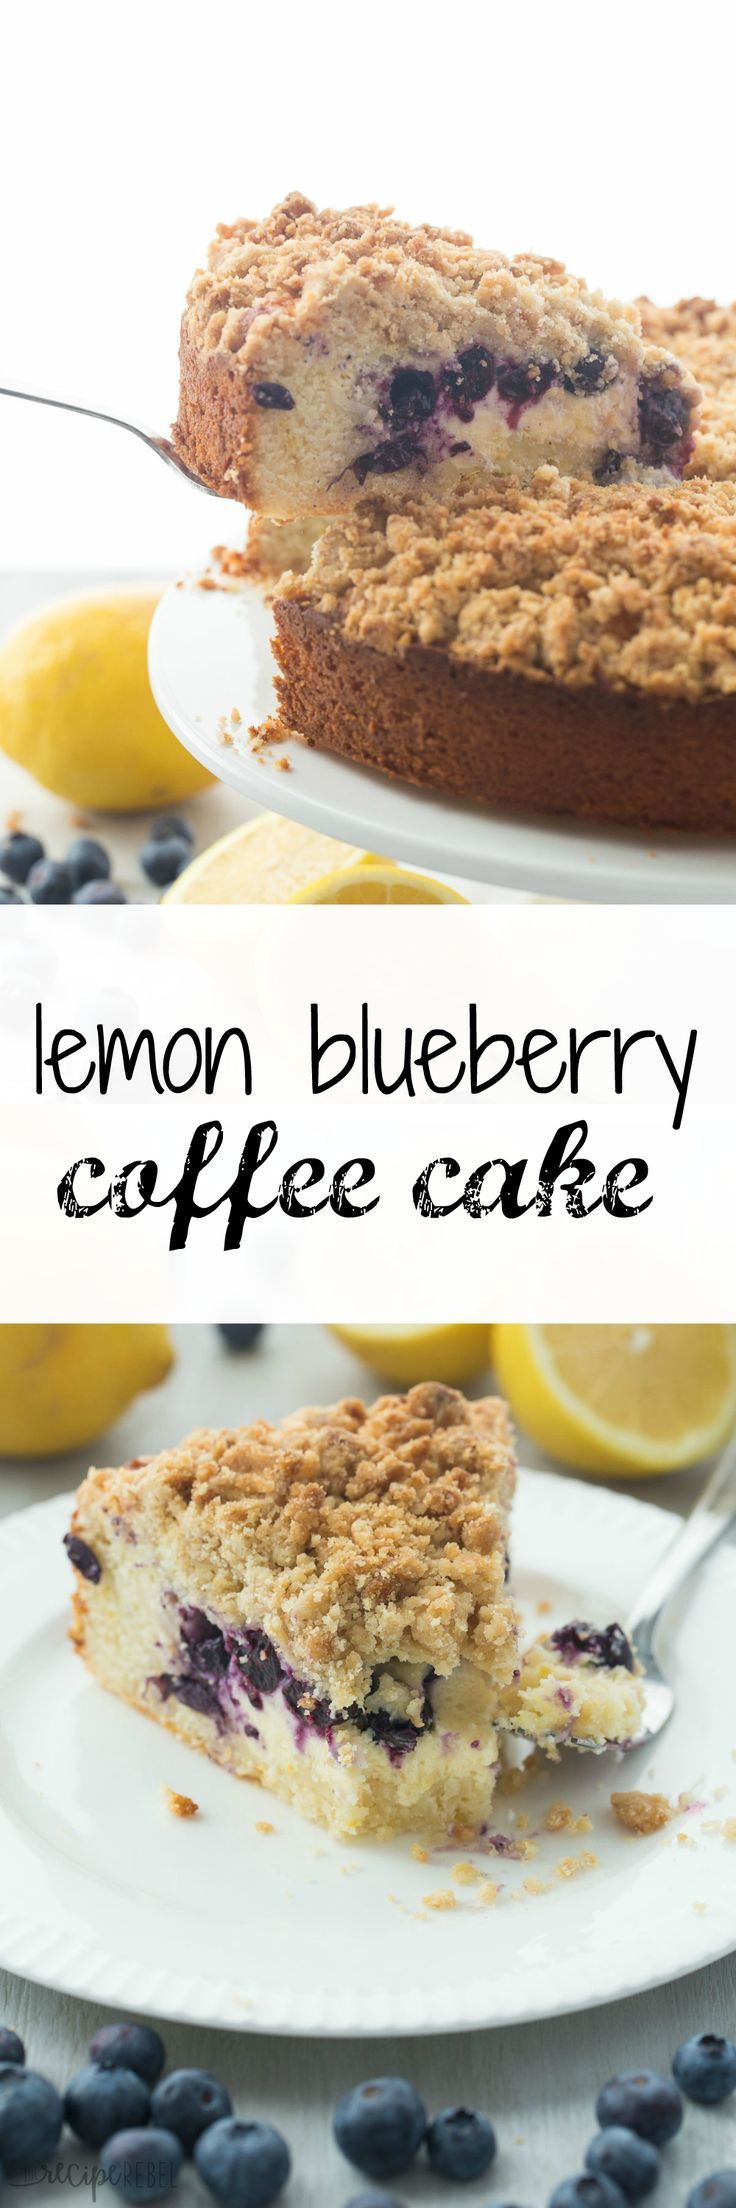 This Lemon Blueberry Cream Cheese Coffee Cake is a soft, moist lemon coffee cake filled with cream cheese and blueberries and topped with a ridiculous amount of crumb topping! The only way to eat coffee cake!